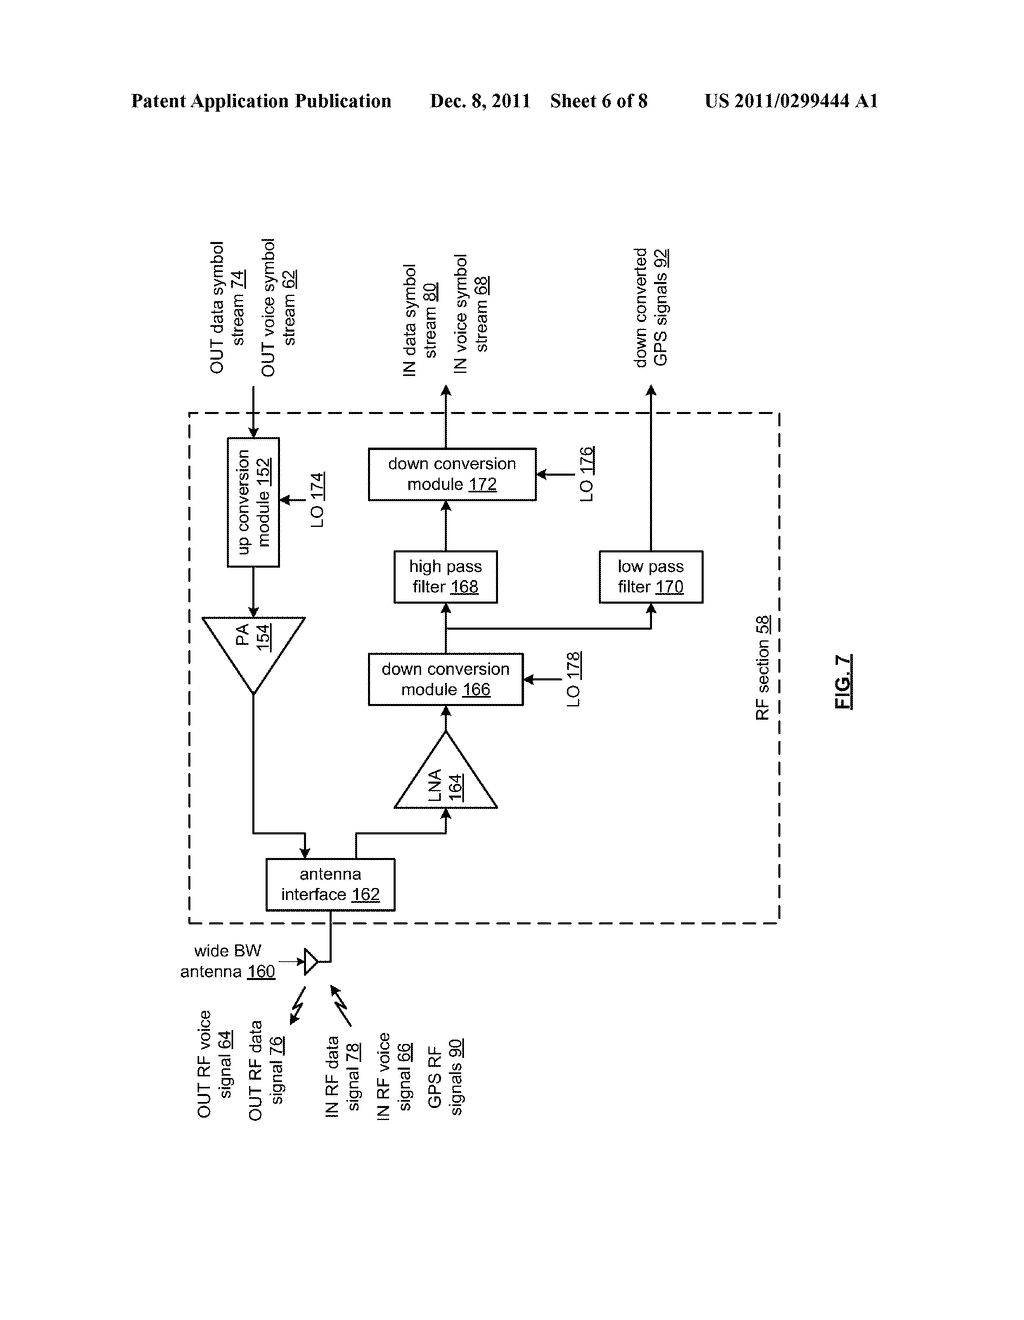 Voice Data Rf Gps Integrated Circuit Diagram Schematic And Image 07 Symbols Components